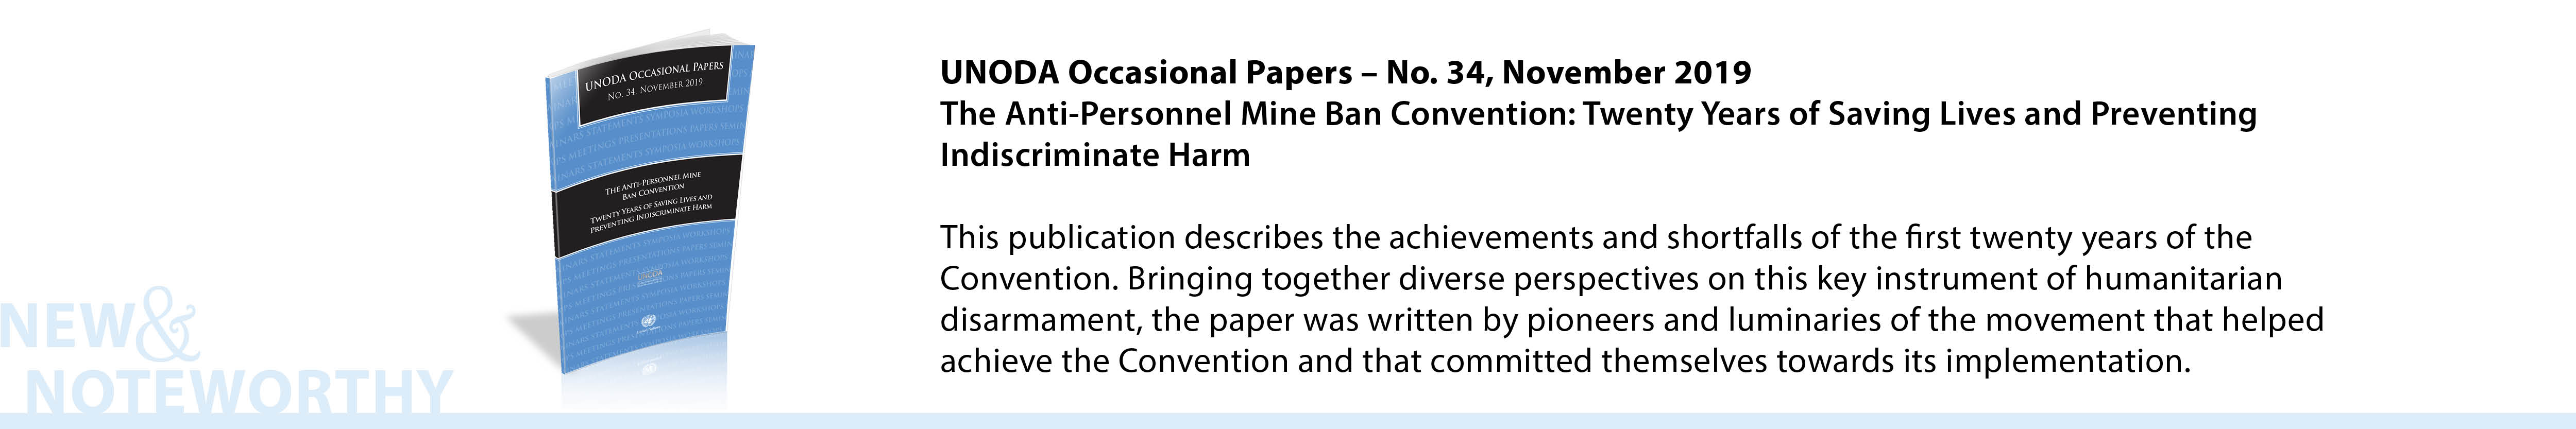 UNODA Occasional Papers, No. 34, November 2019 - The Anti-Personnel Mine Ban Convention: Twenty Years of Saving Lives and Preventing Indiscriminate Harm - This publication describes the achievements and shortfalls of the first twenty years of the Convention. Bringing together diverse perspectives on this key instrument of humanitarian disarmament, the paper was written by pioneers and luminaries of the movement that helped achieve the Convention and that committed themselves towards its implementation.